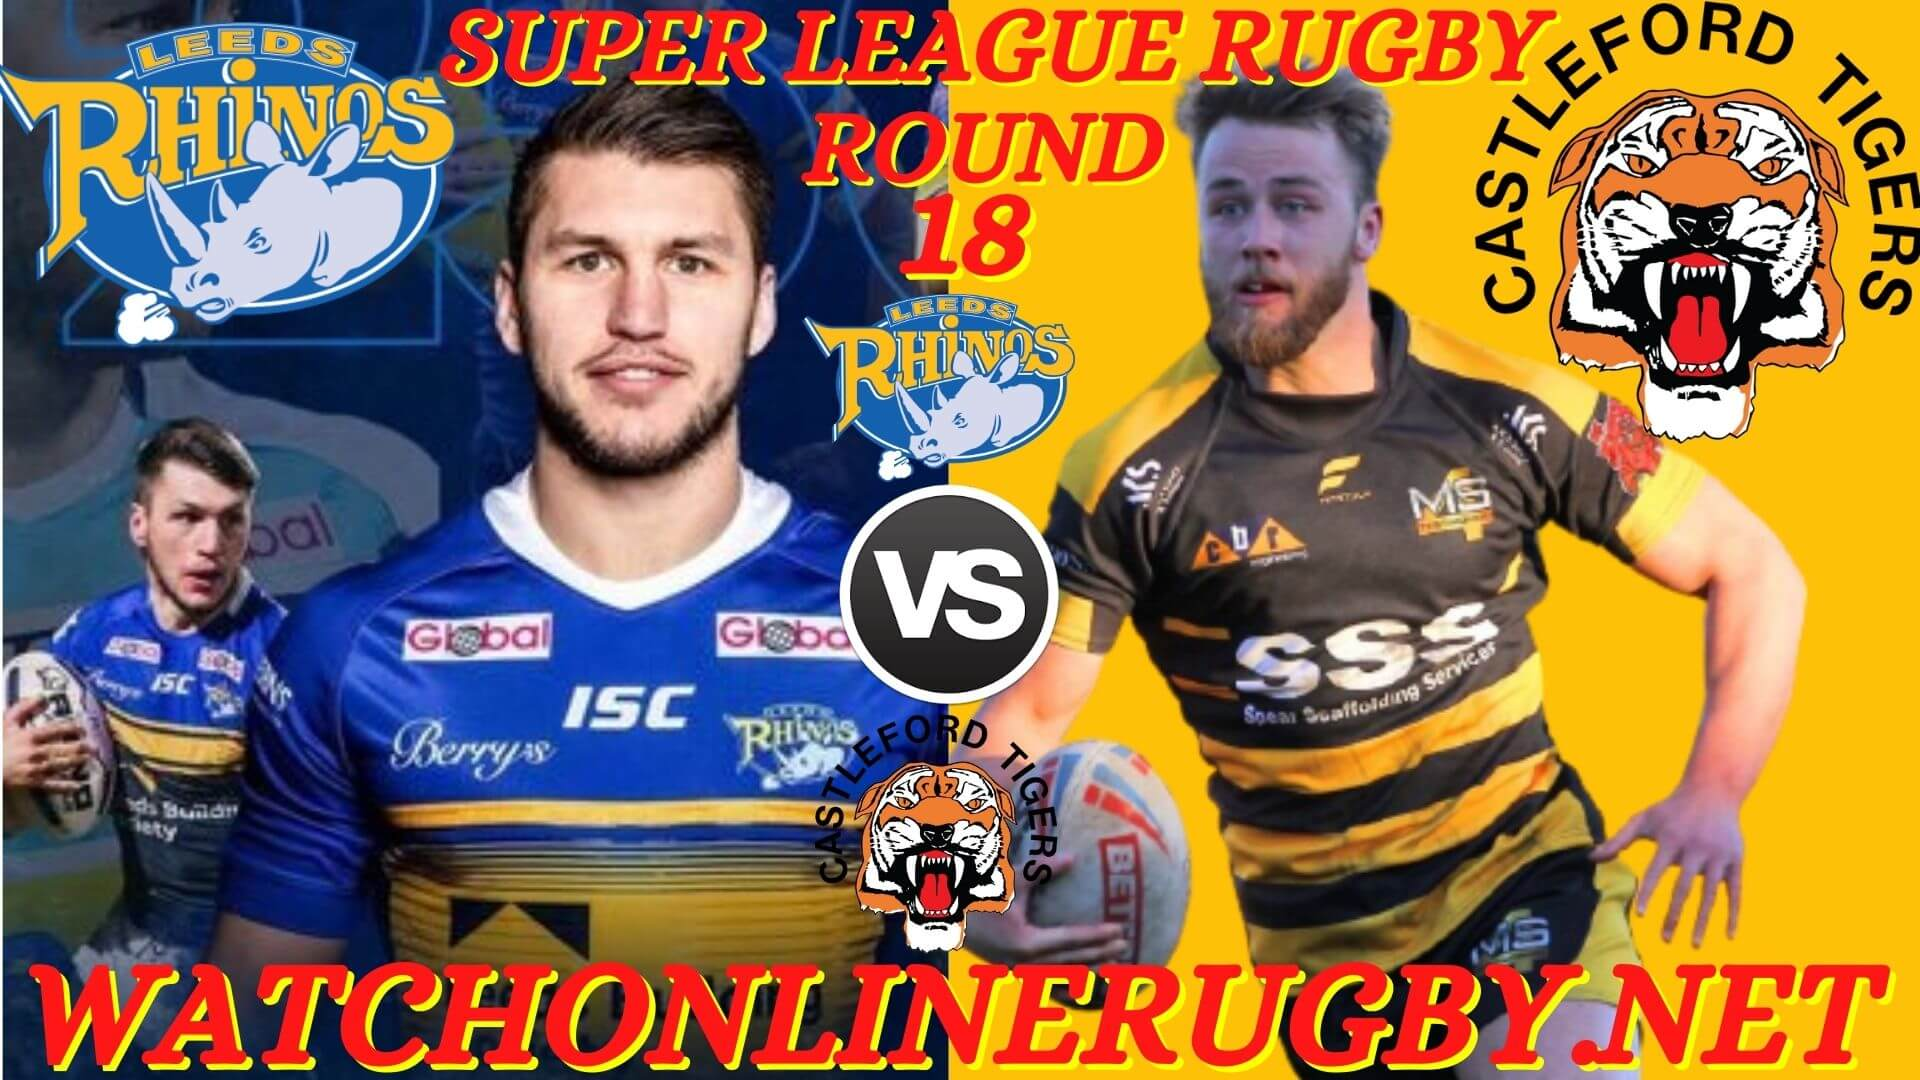 Leeds Rhinos Vs Castleford Tigers Super League 2020 RD 18